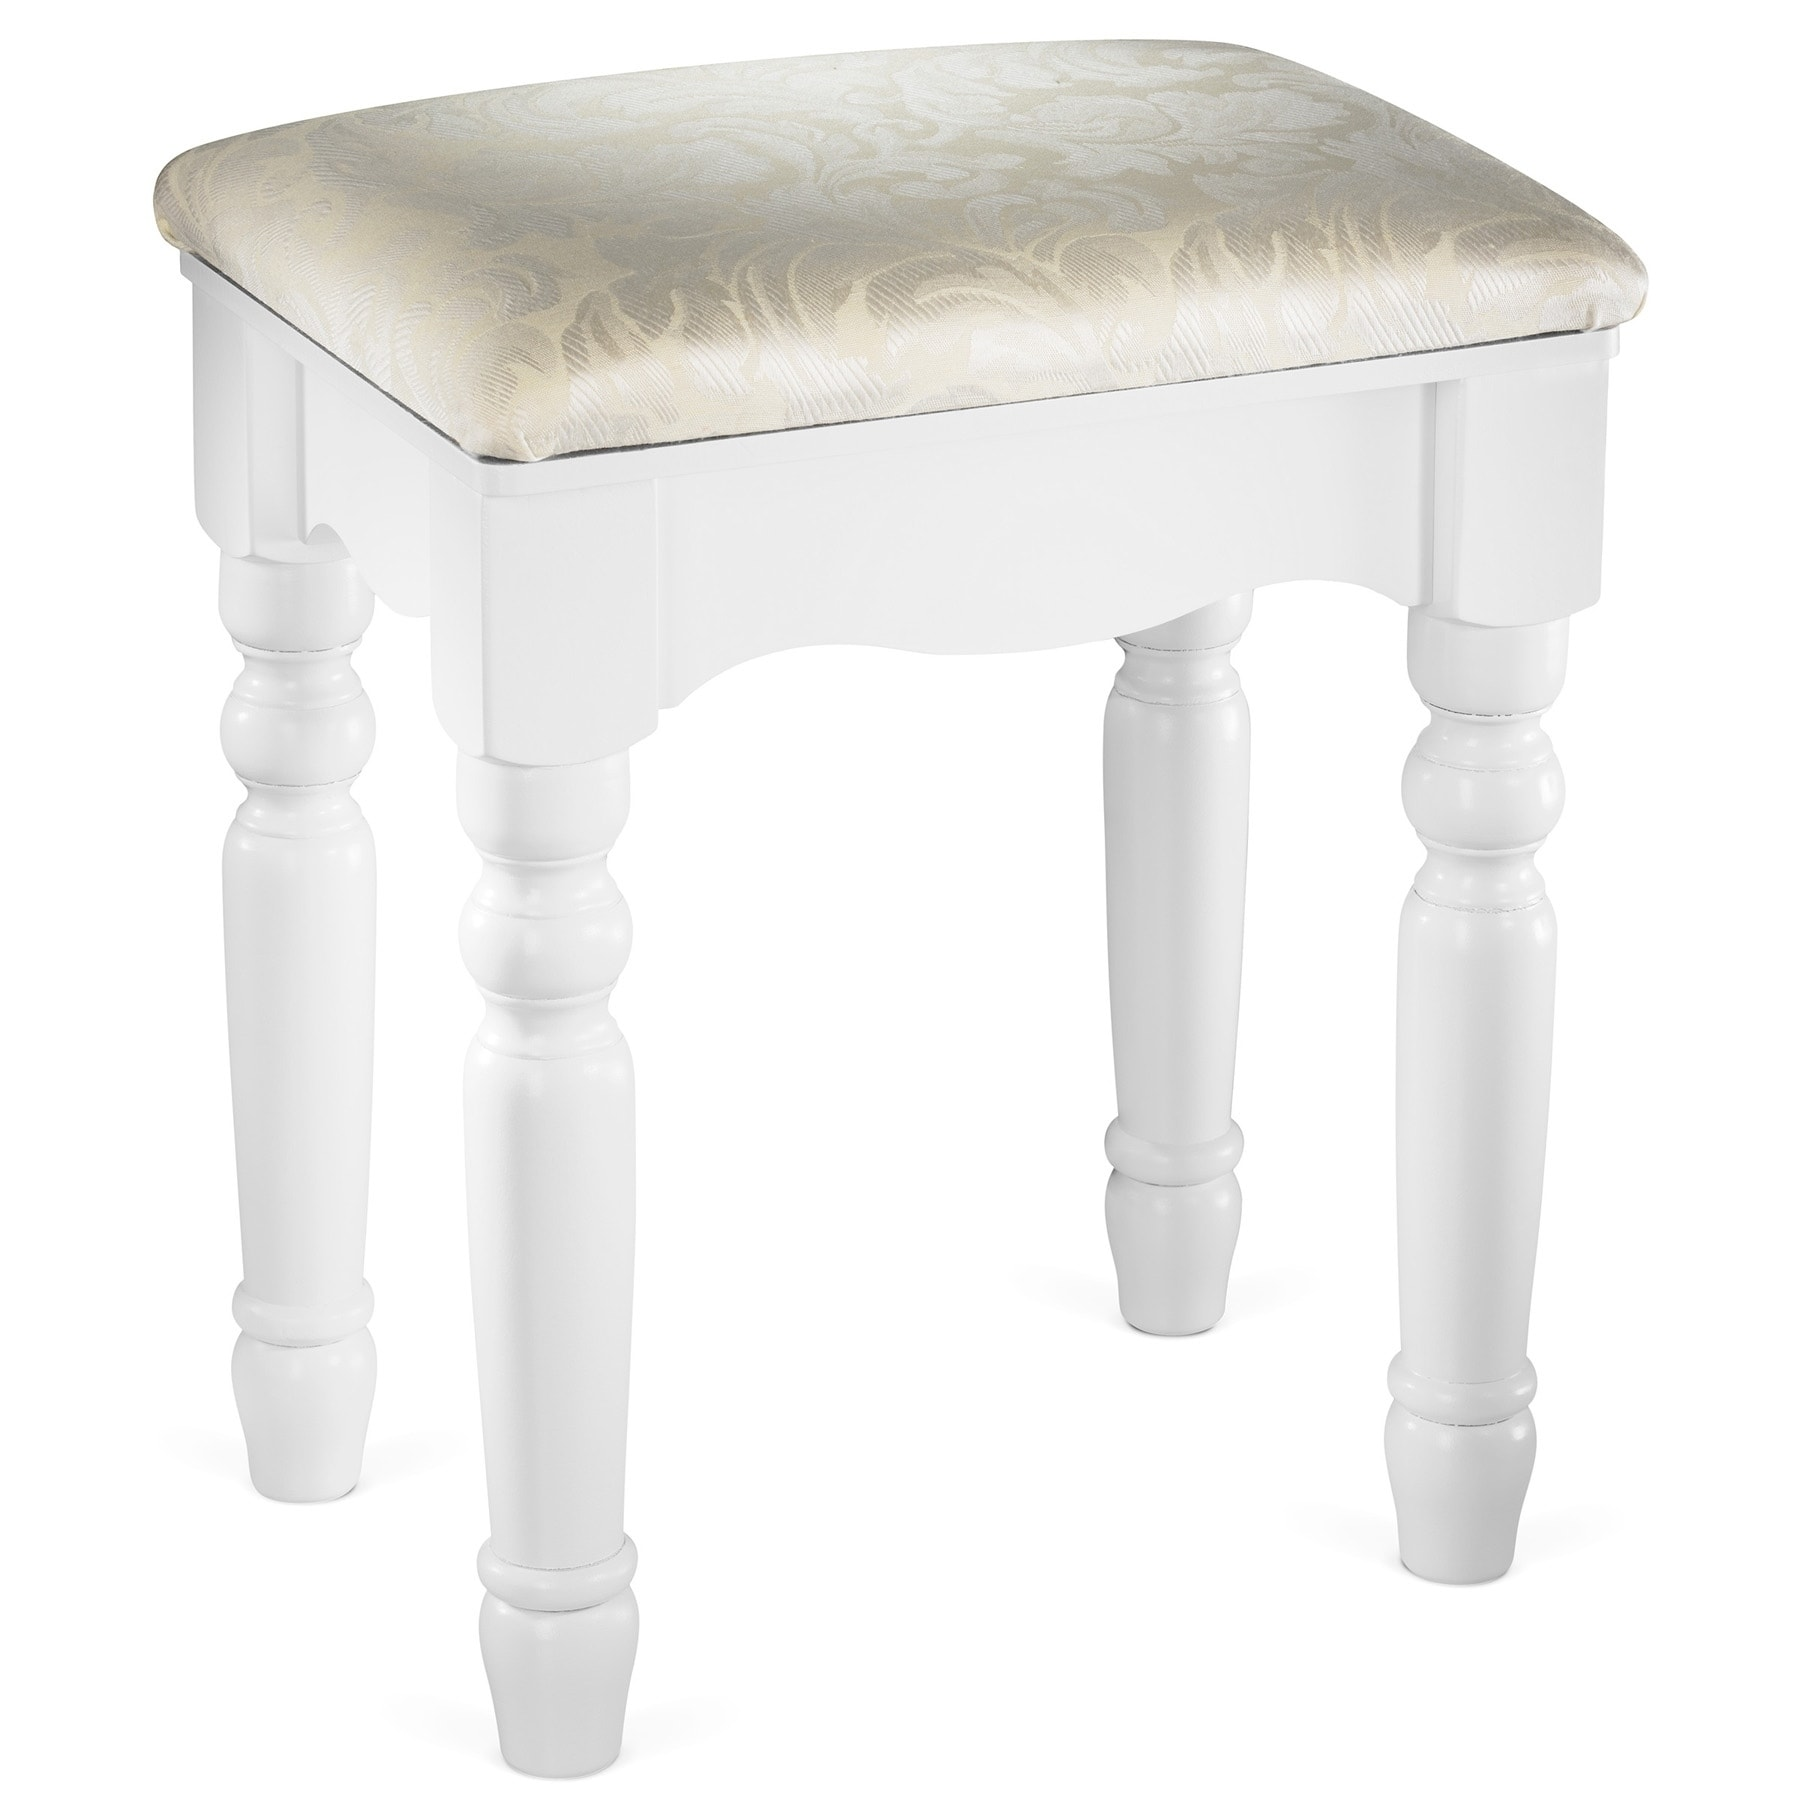 Fineboard Luxury Vanity Stool Makeup Dressing Stool Pad Cushioned Chair for  Vanity Tables and Bedroom Sets